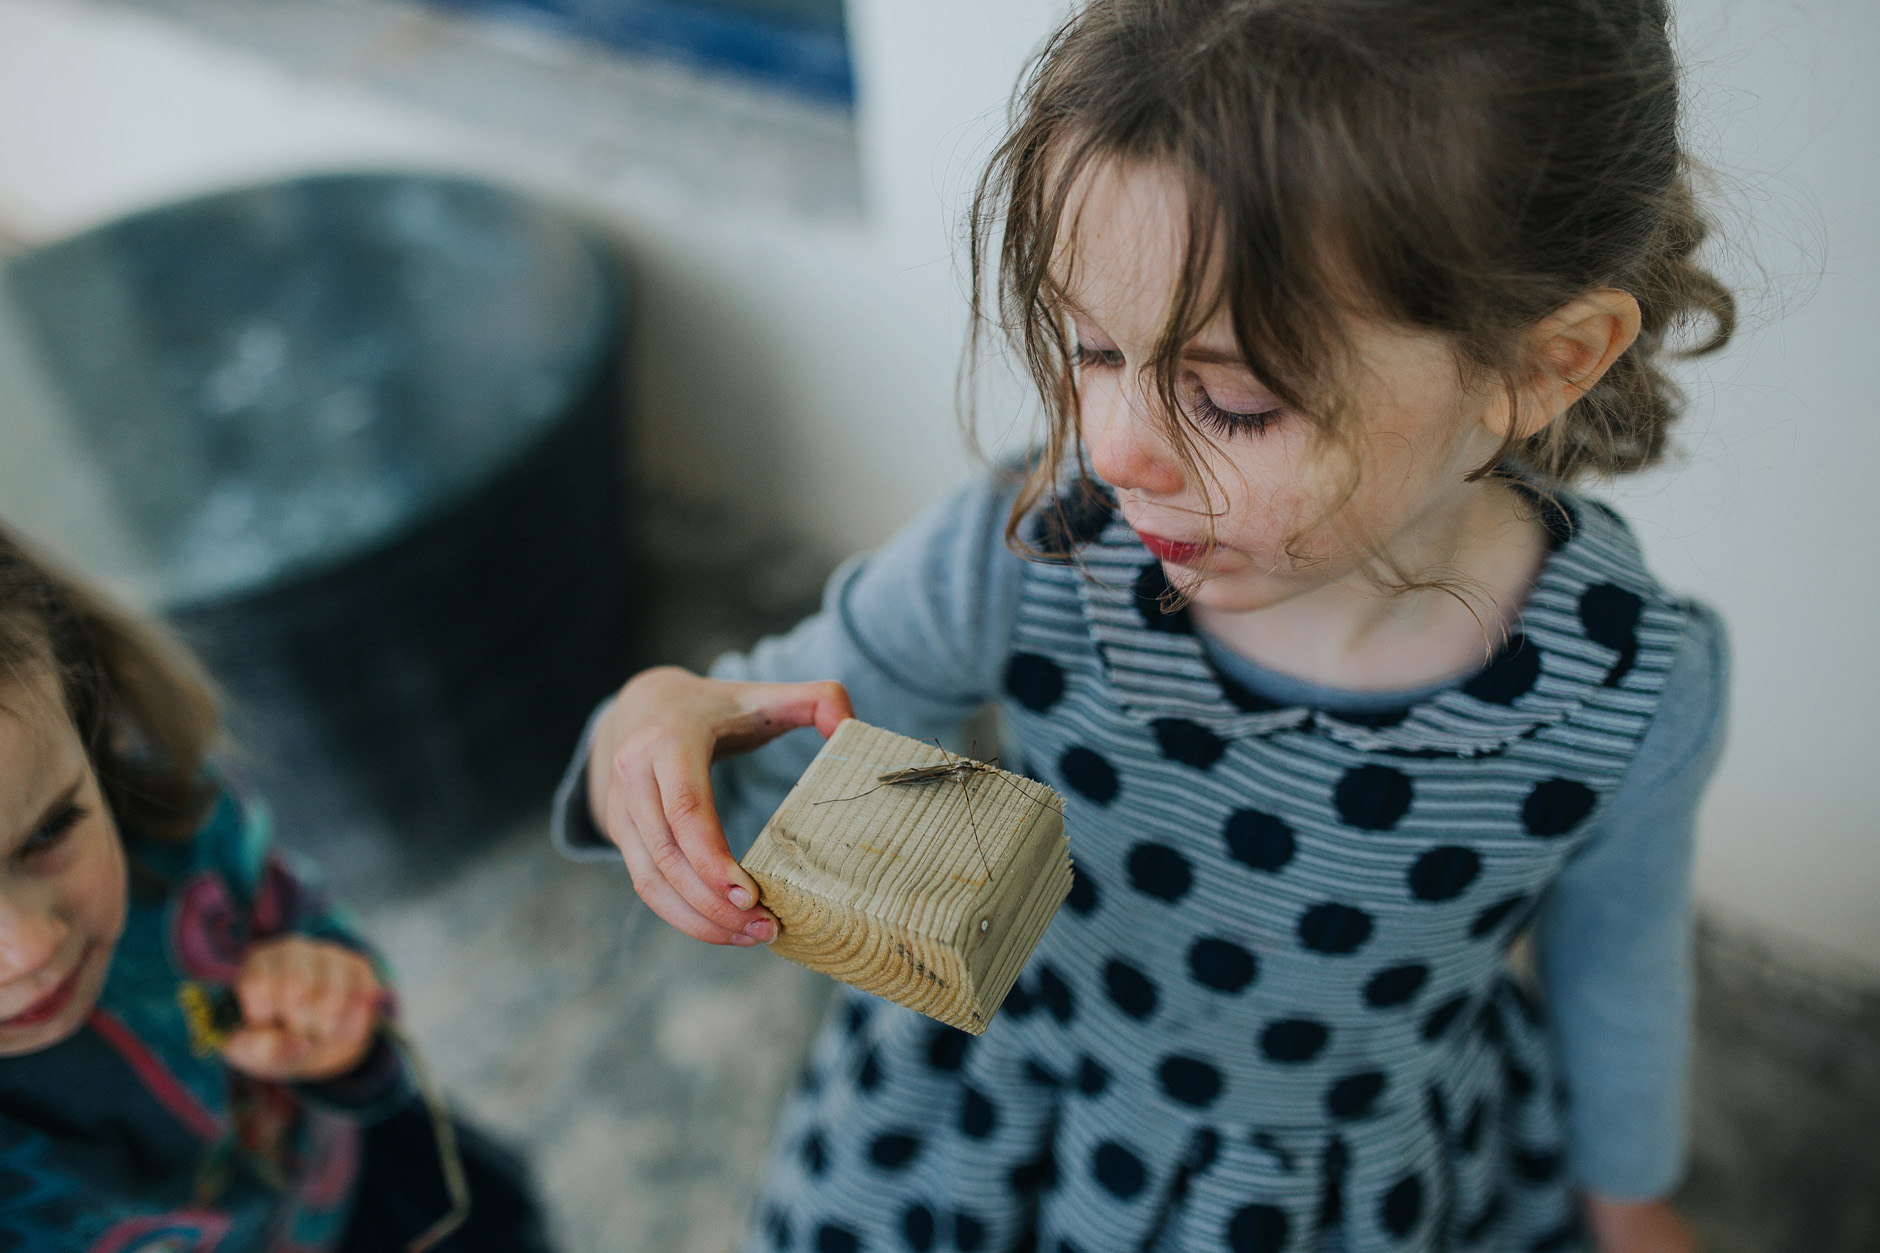 Little girl holding a wooden block with an insect on it